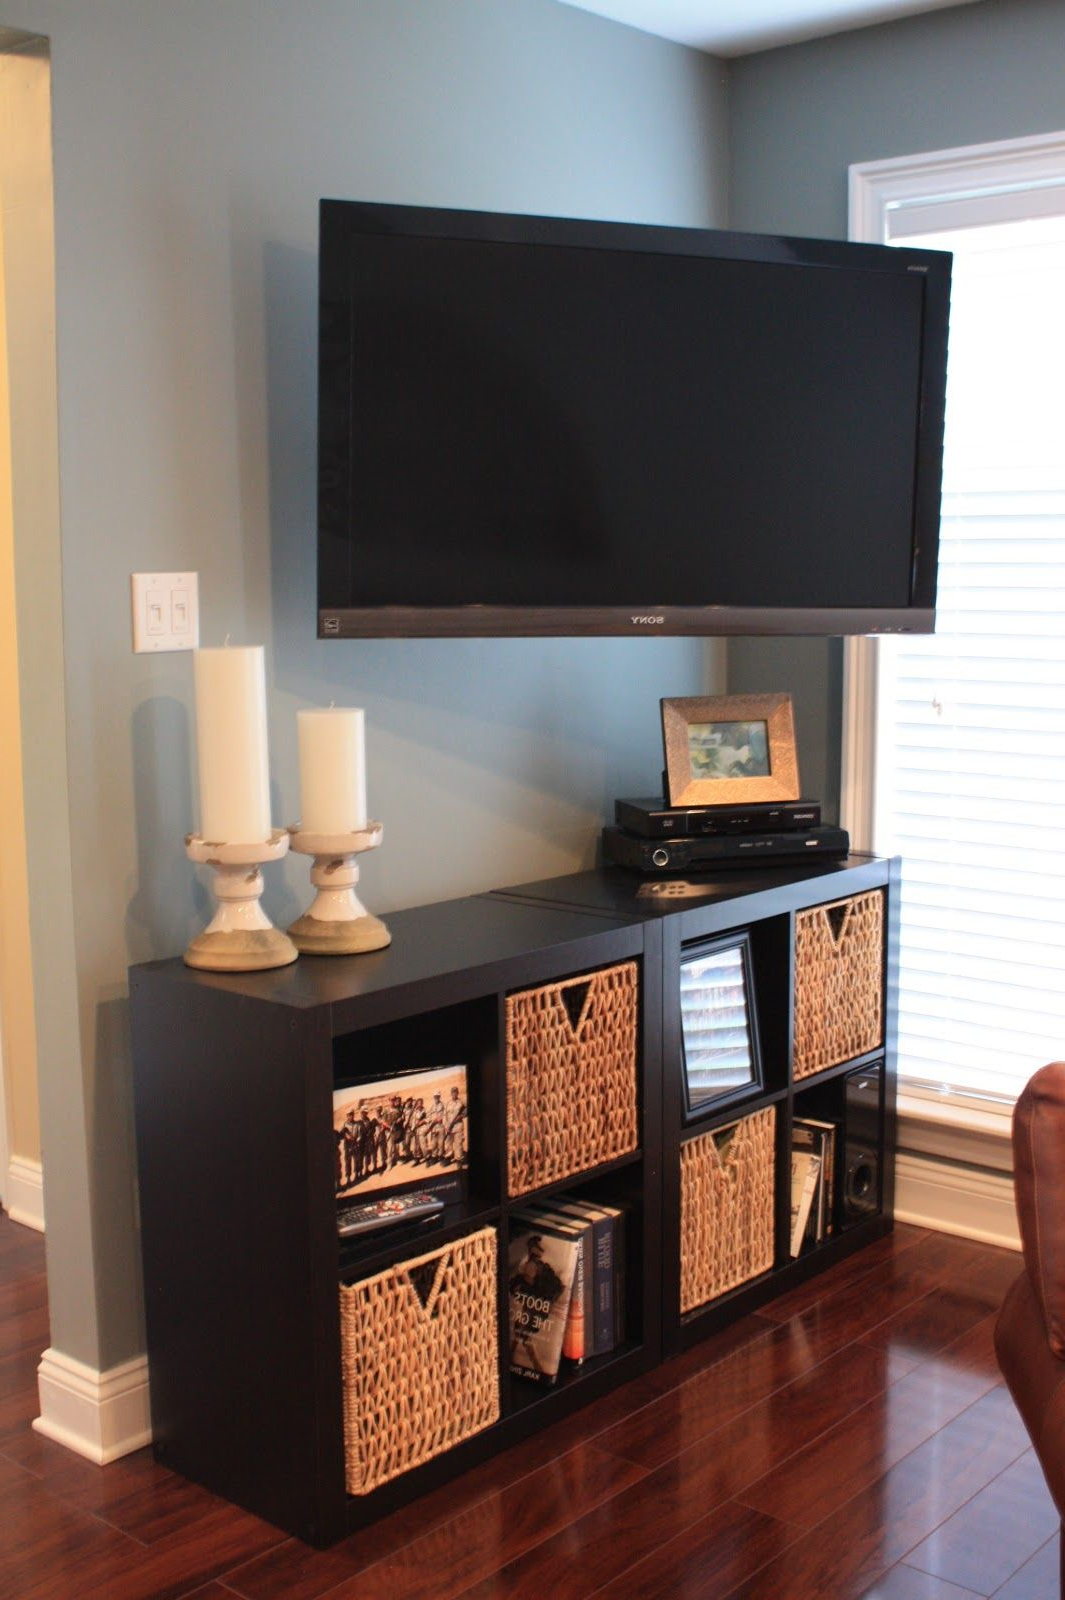 Popular Diy Tv Stand Plans Panel Designs For Living Room Ideas Small Spaces Regarding Tv Stands For Small Spaces (Gallery 11 of 20)